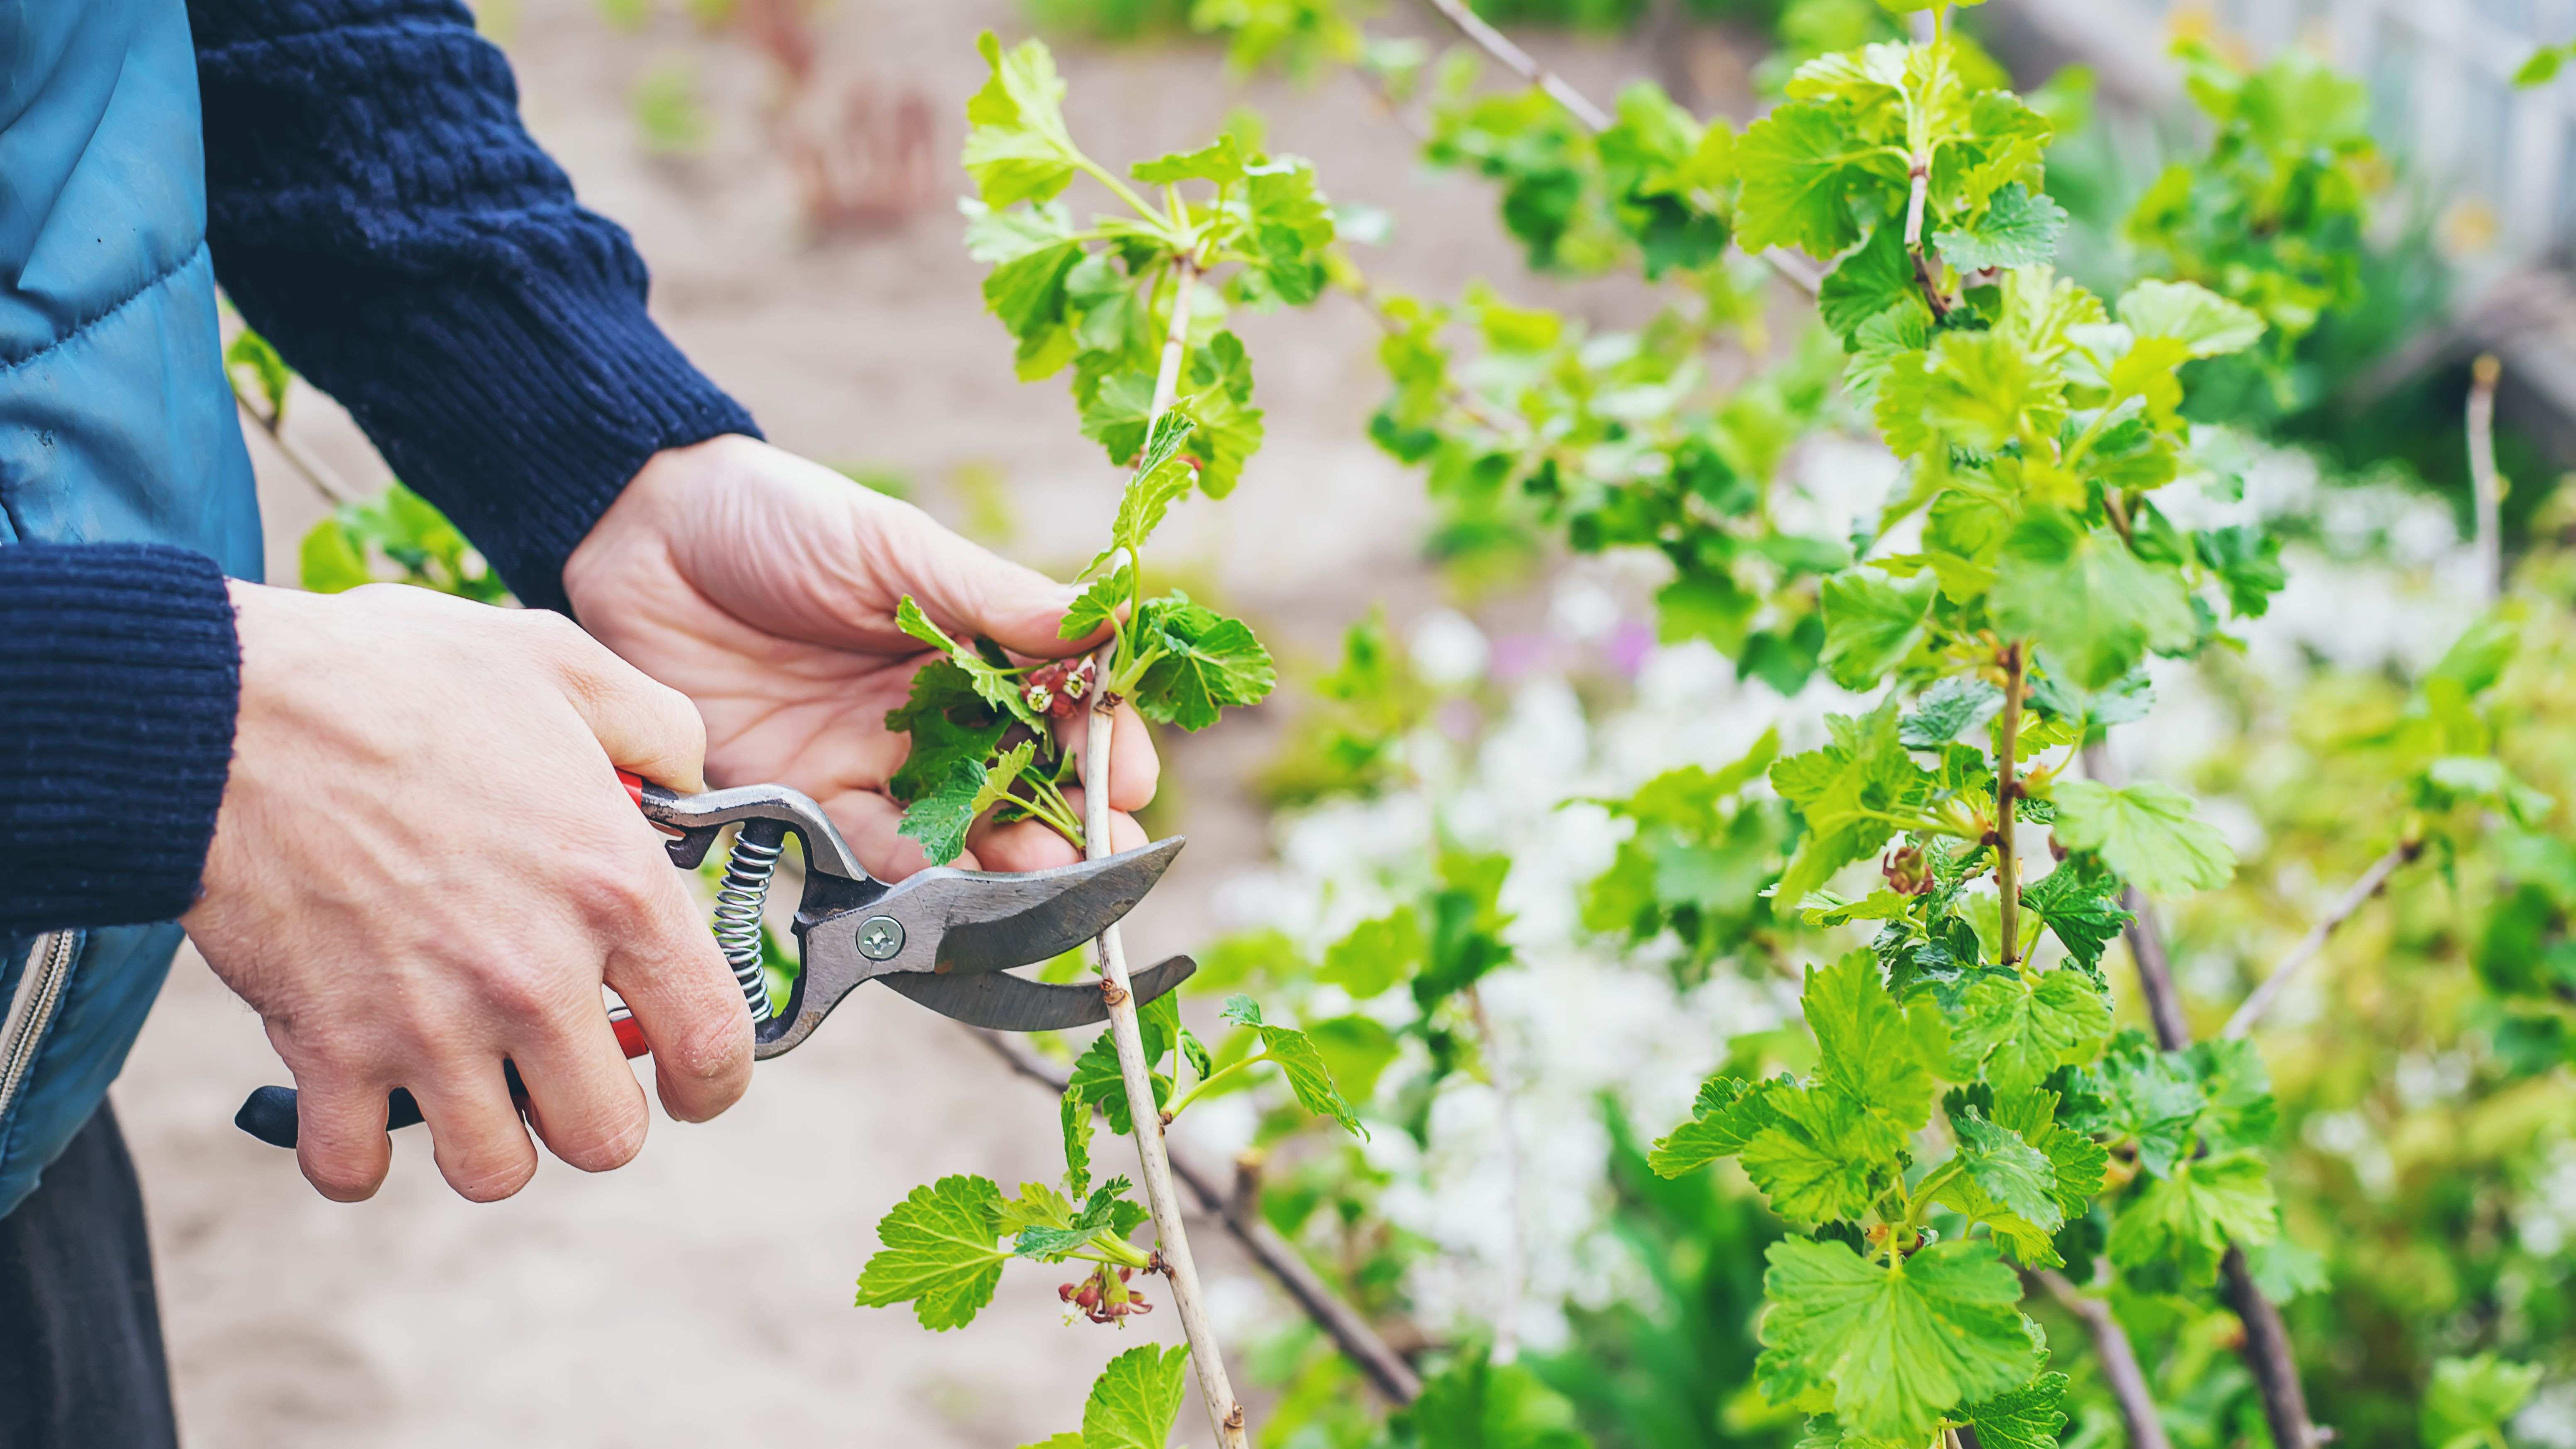 How to prune your trees and shrubs